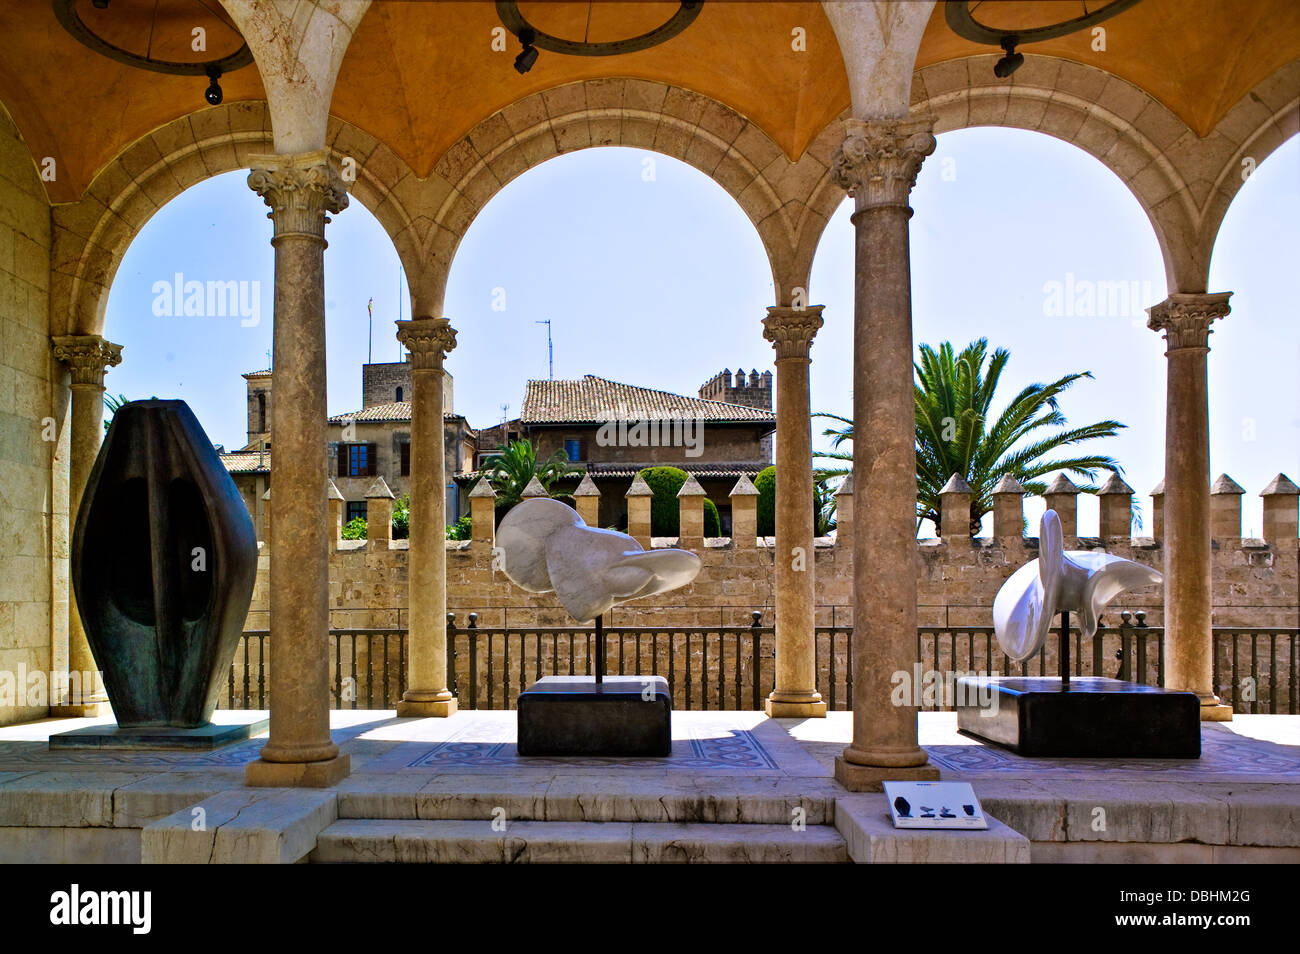 Sculpture at the palau march palma de mallorca stock